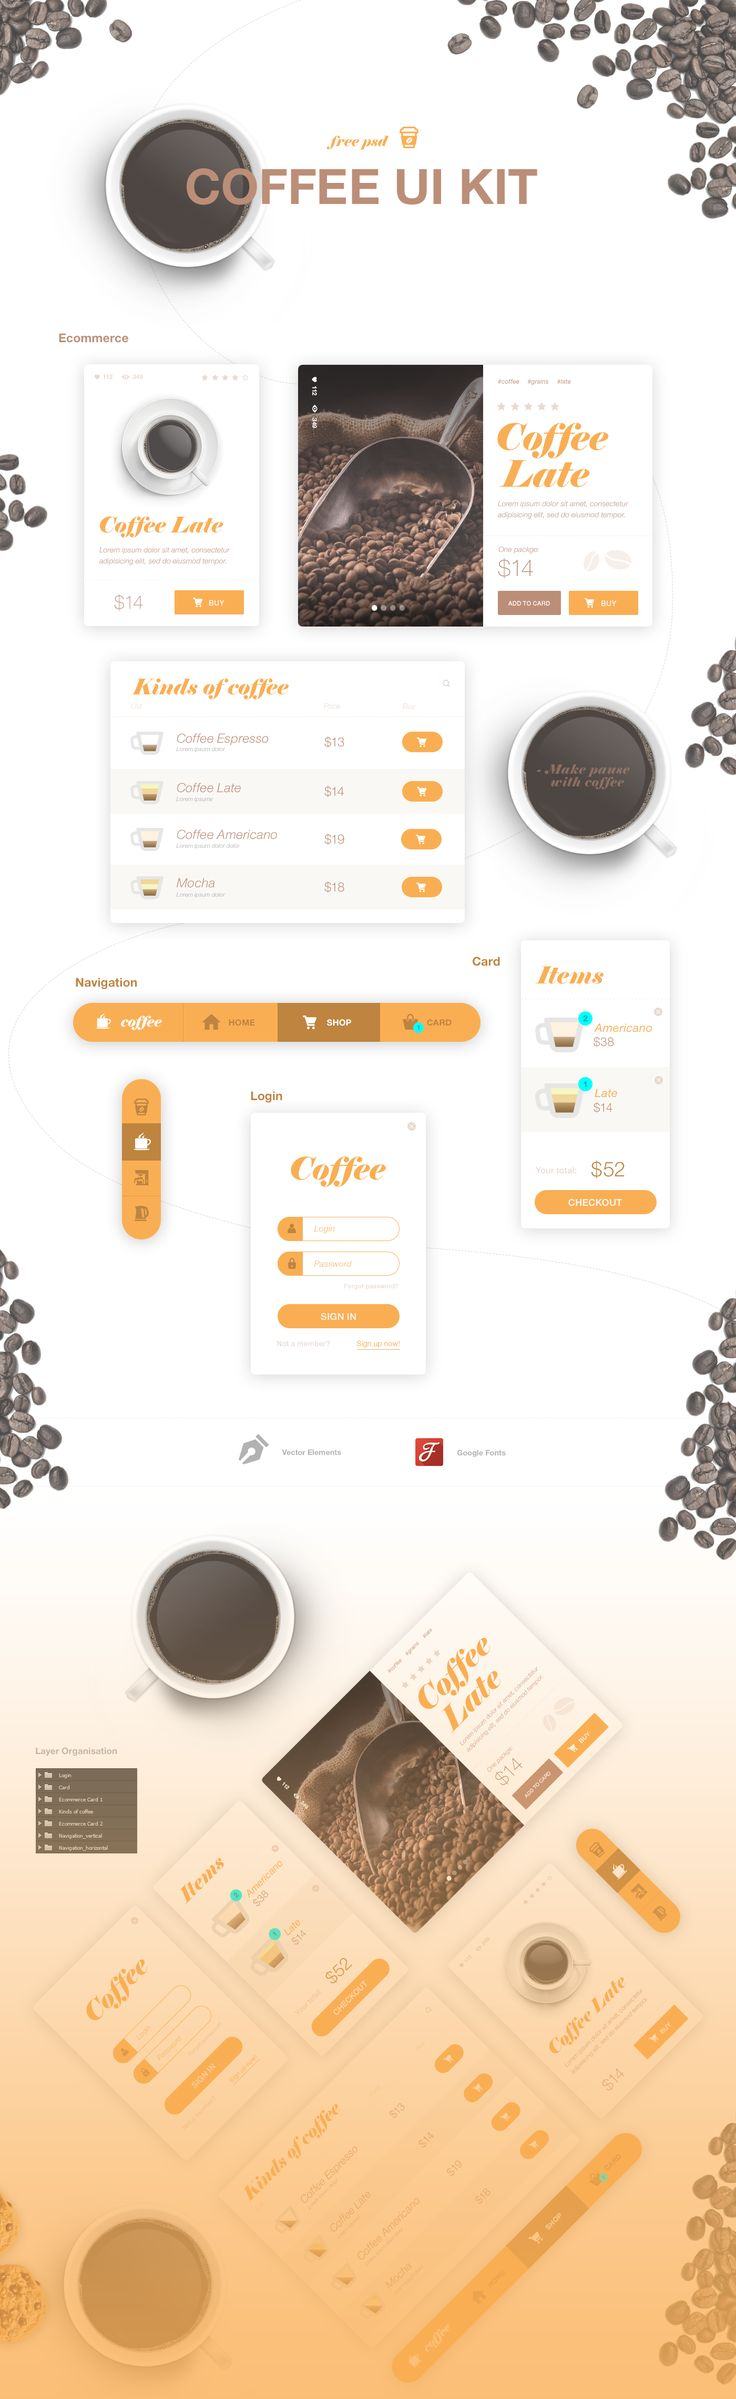 Coffee UI Kit - Free Psd on Behance